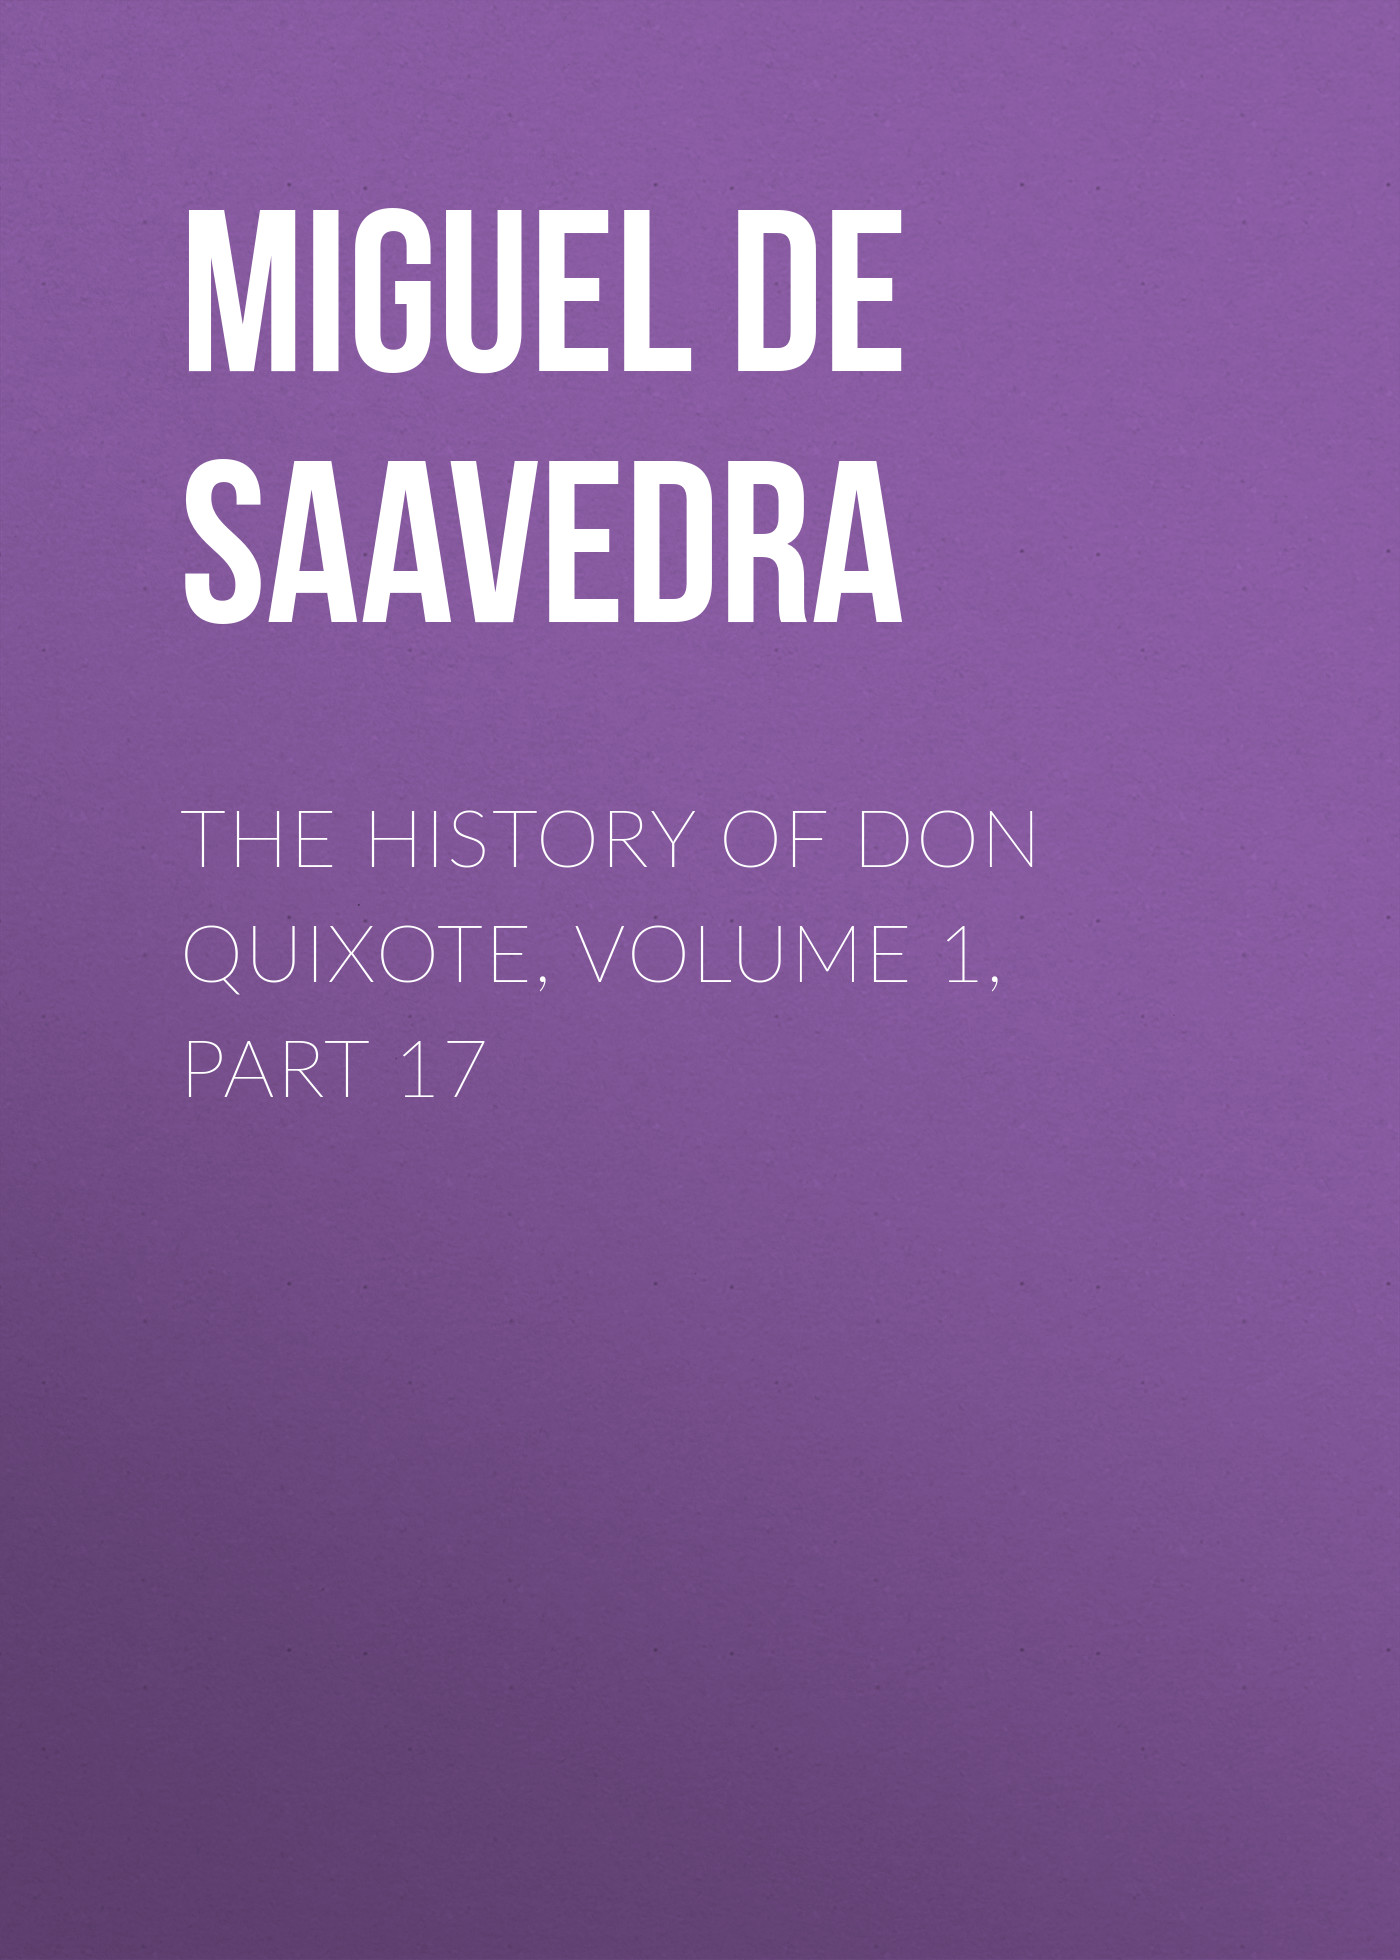 the history of don quixote volume 1 part 17